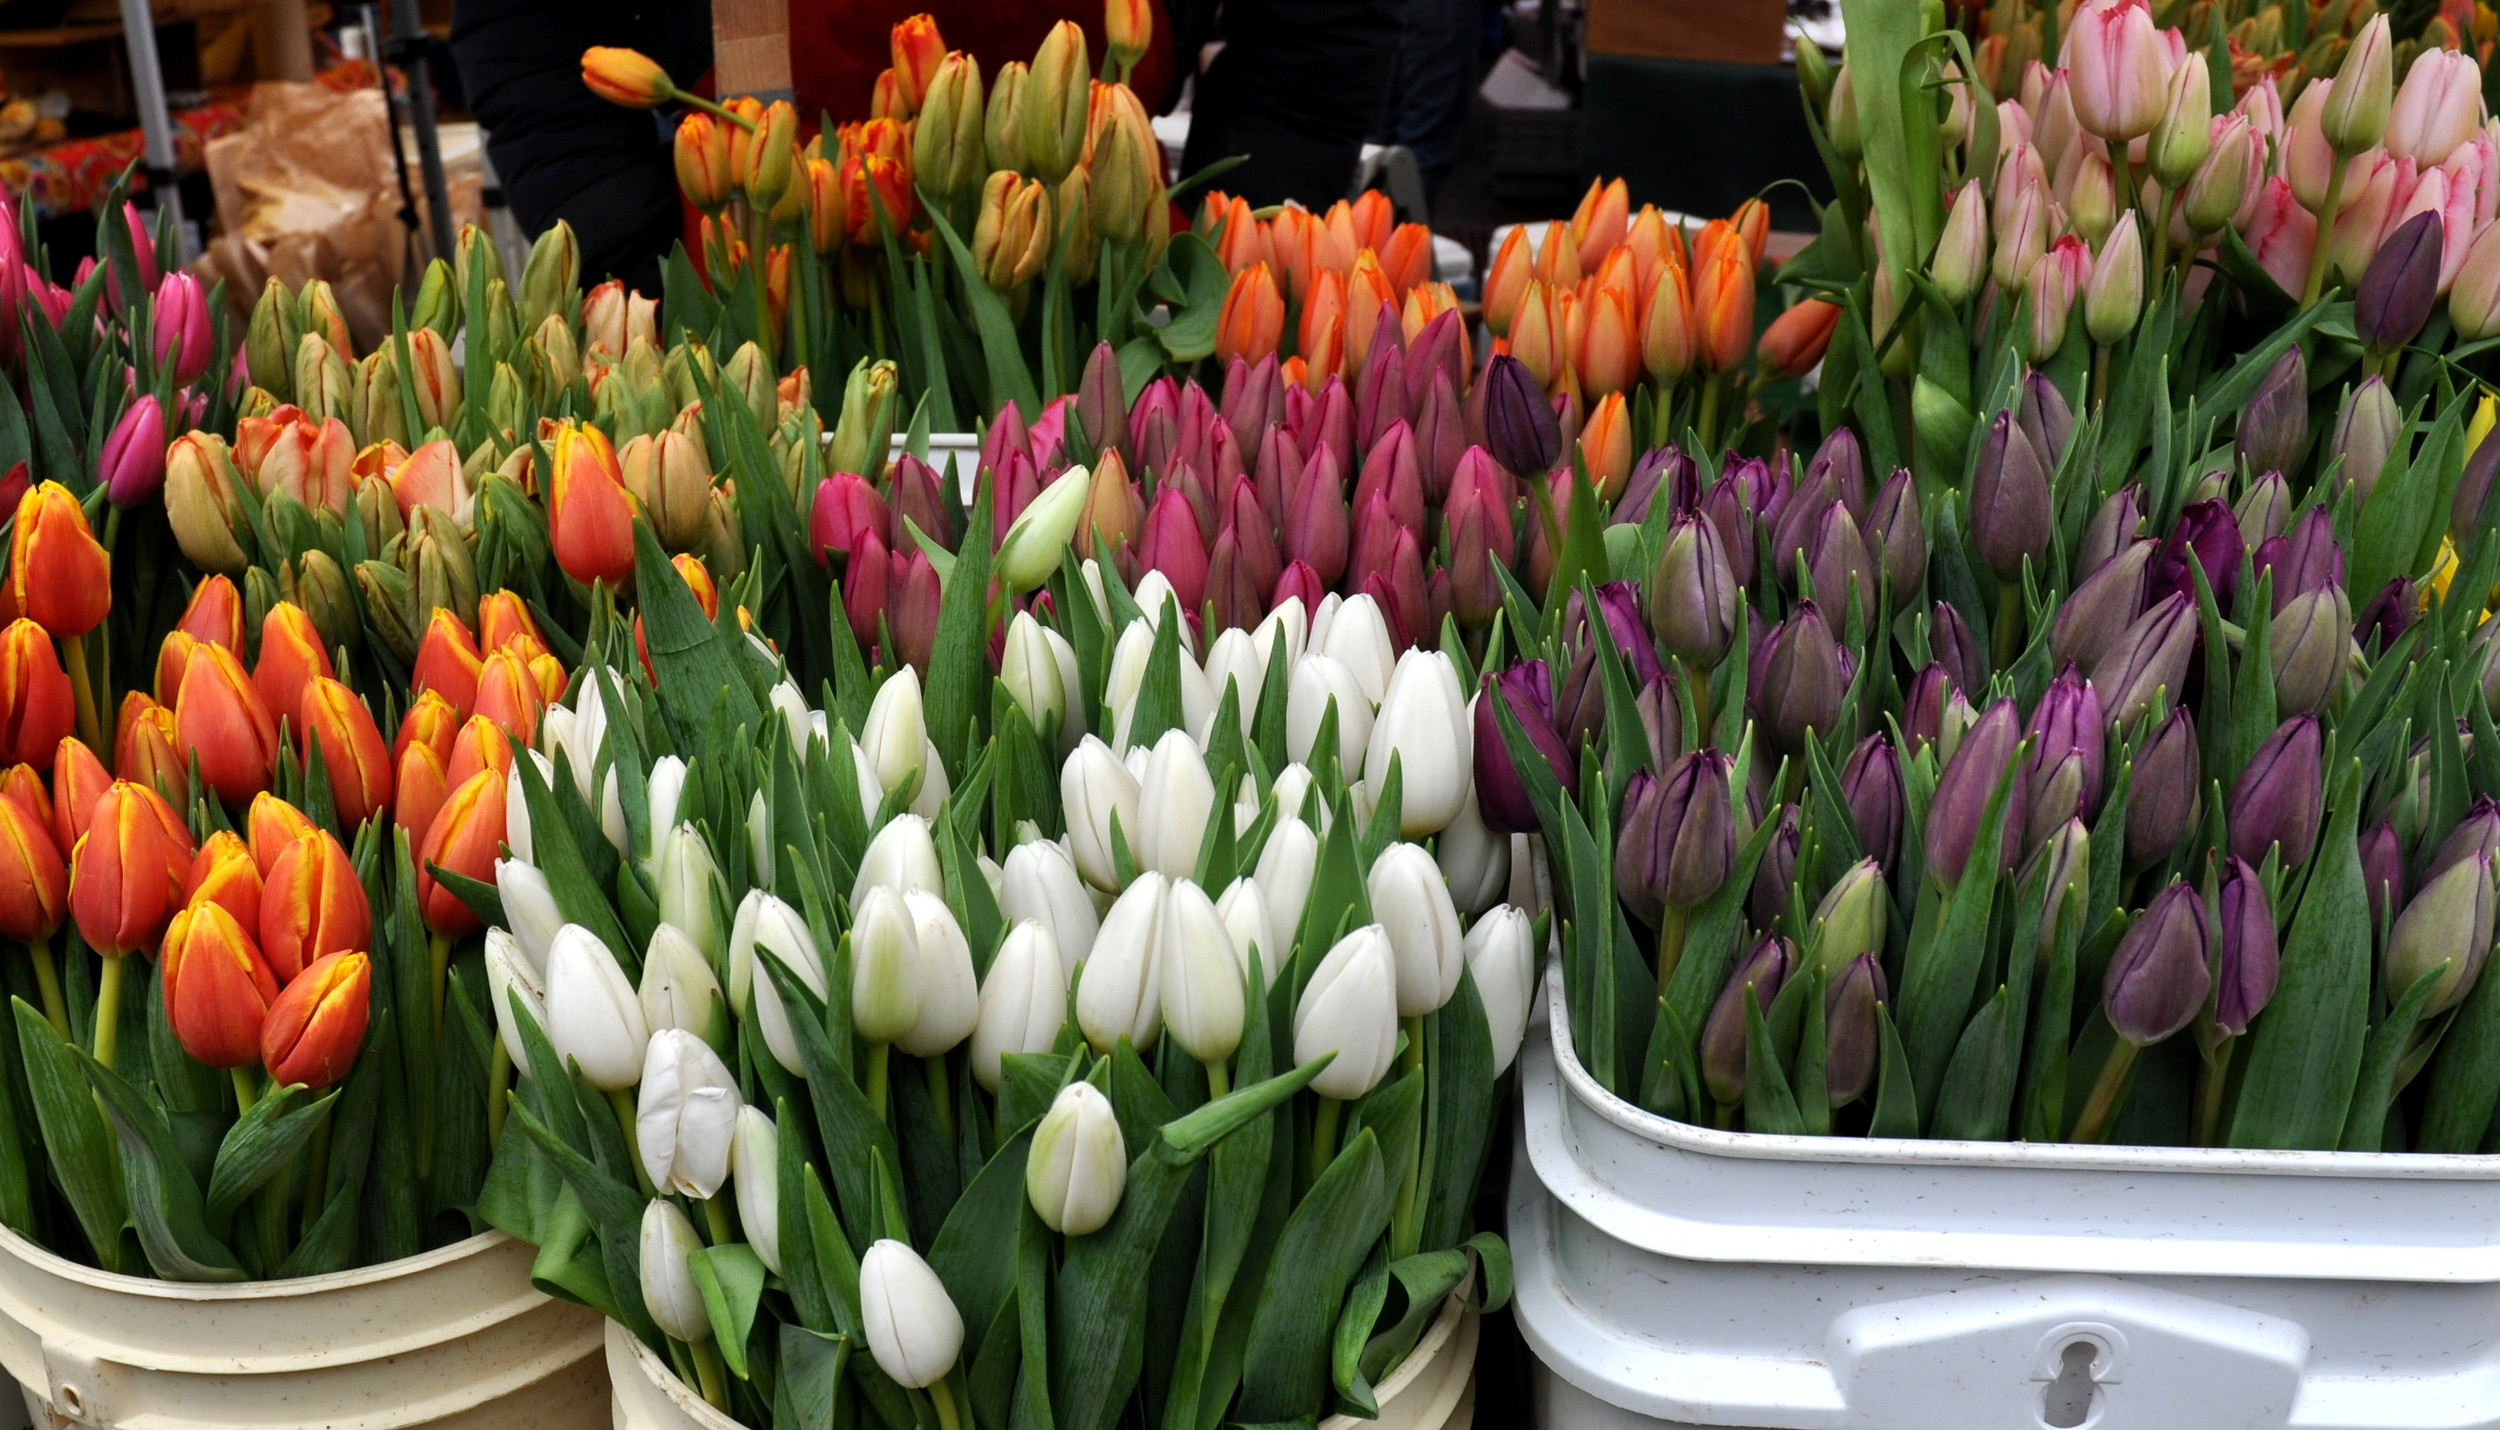 First-of-the-year fresh tulips from Alm HIll Gardens at Ballard Farmers Market. Copyright Zachary D. Lyons.